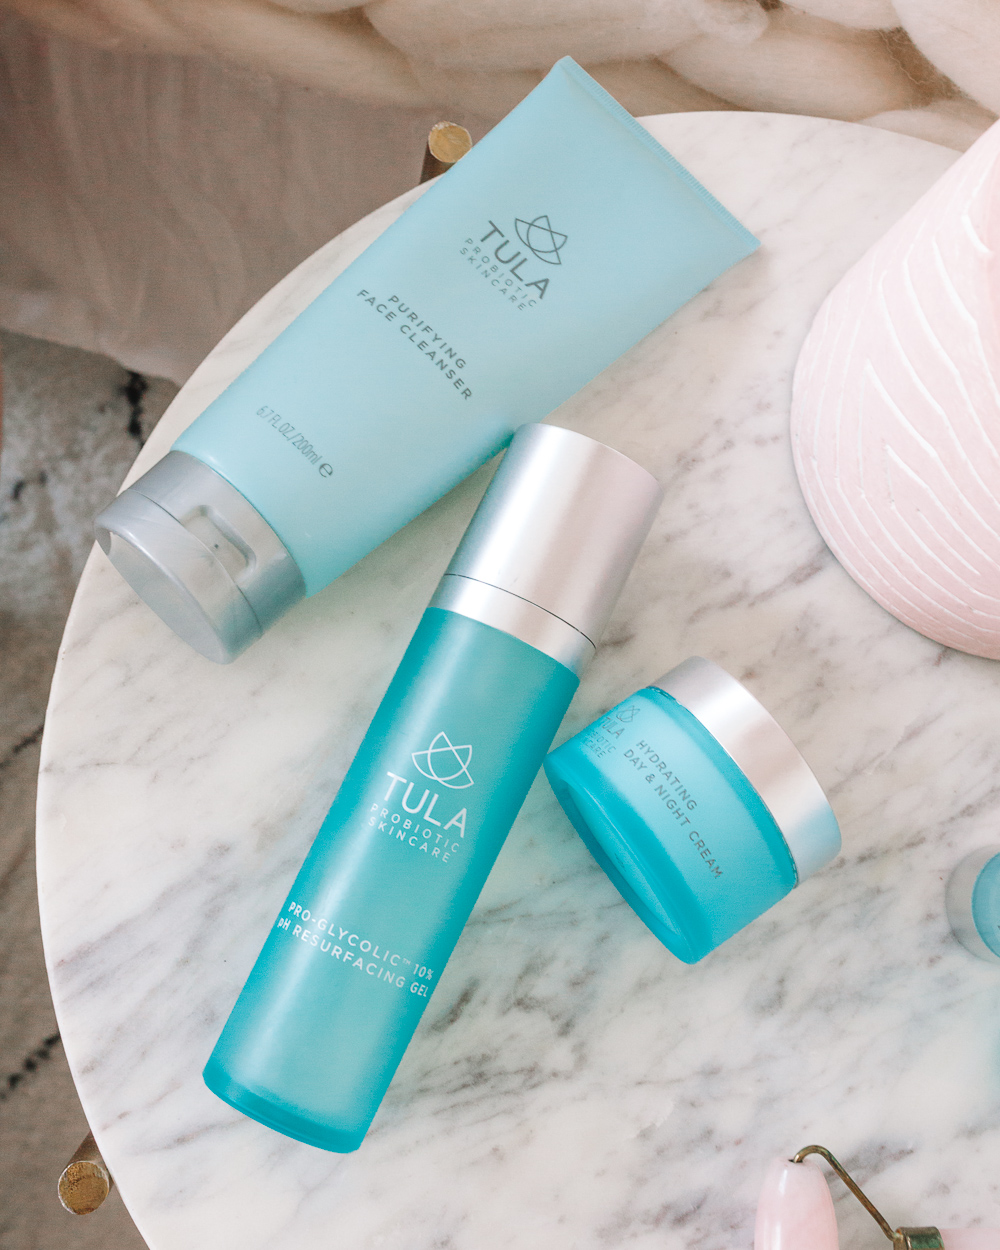 My Skincare Routine For Acne Prone Skin + TULA Reviews